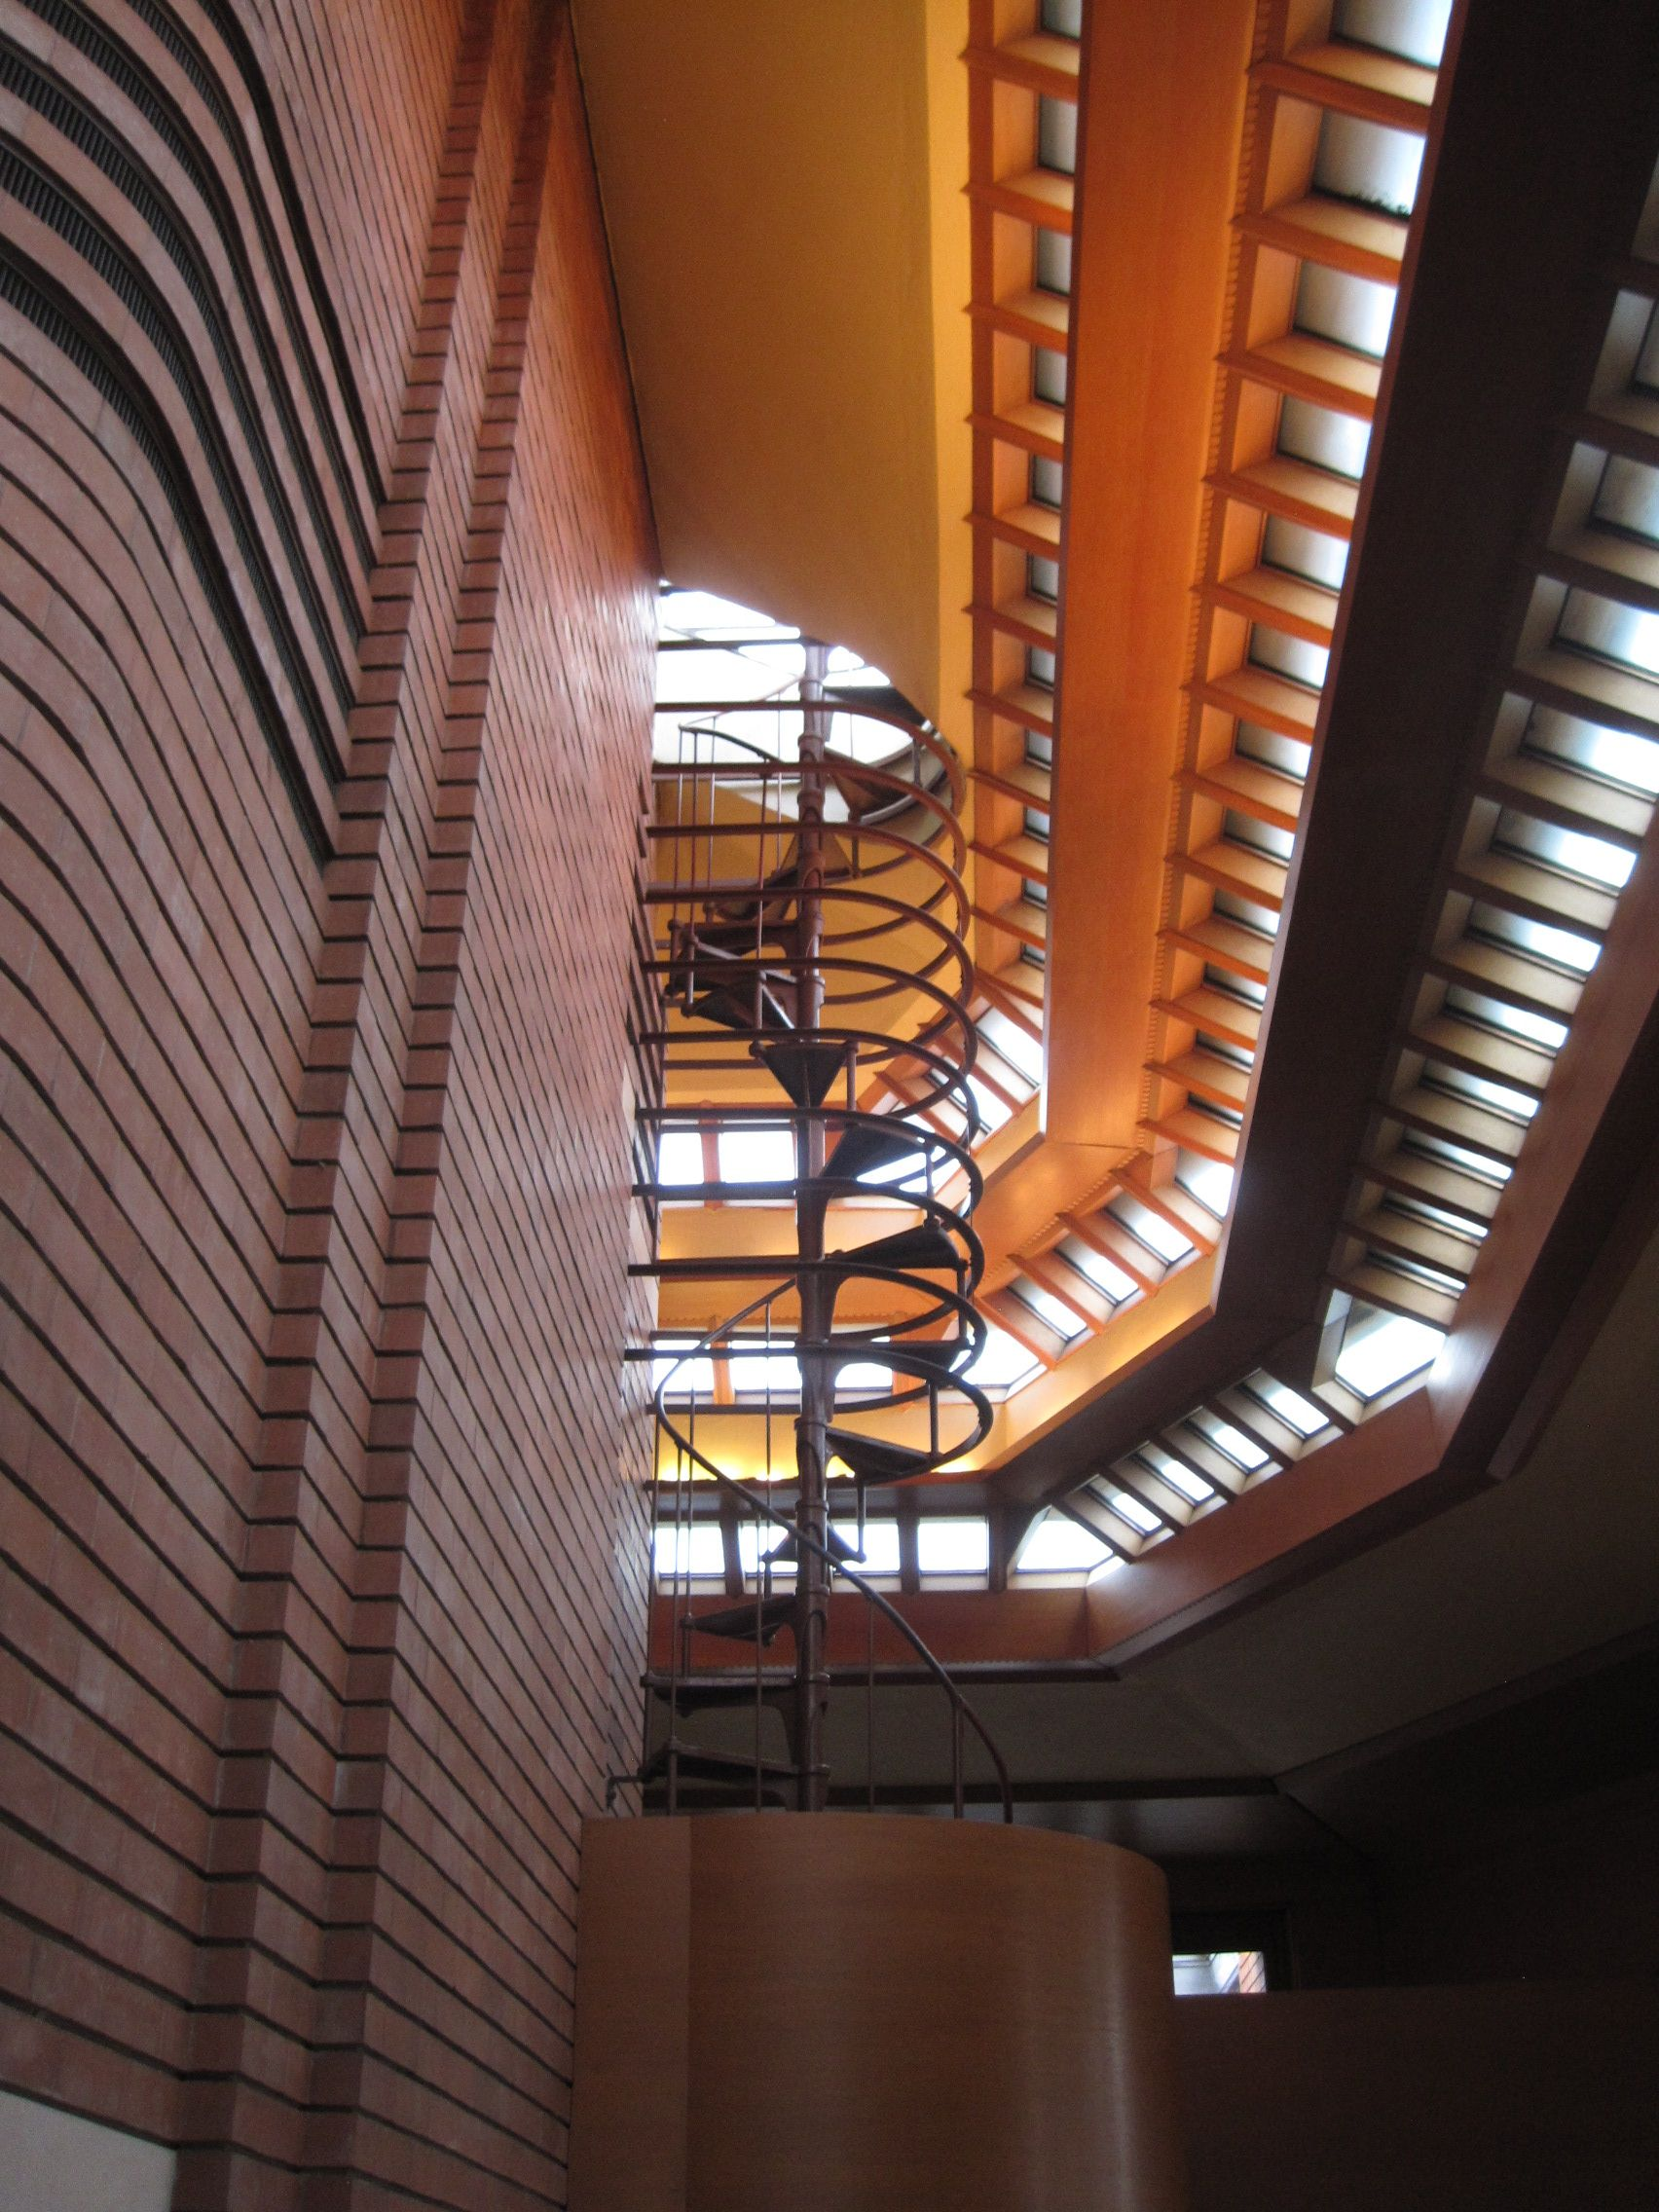 Wingspread In Racine, WI By Frank Lloyd Wright #franklloydwright  #wingspread #chicagoarchitecturebiennial #stairs